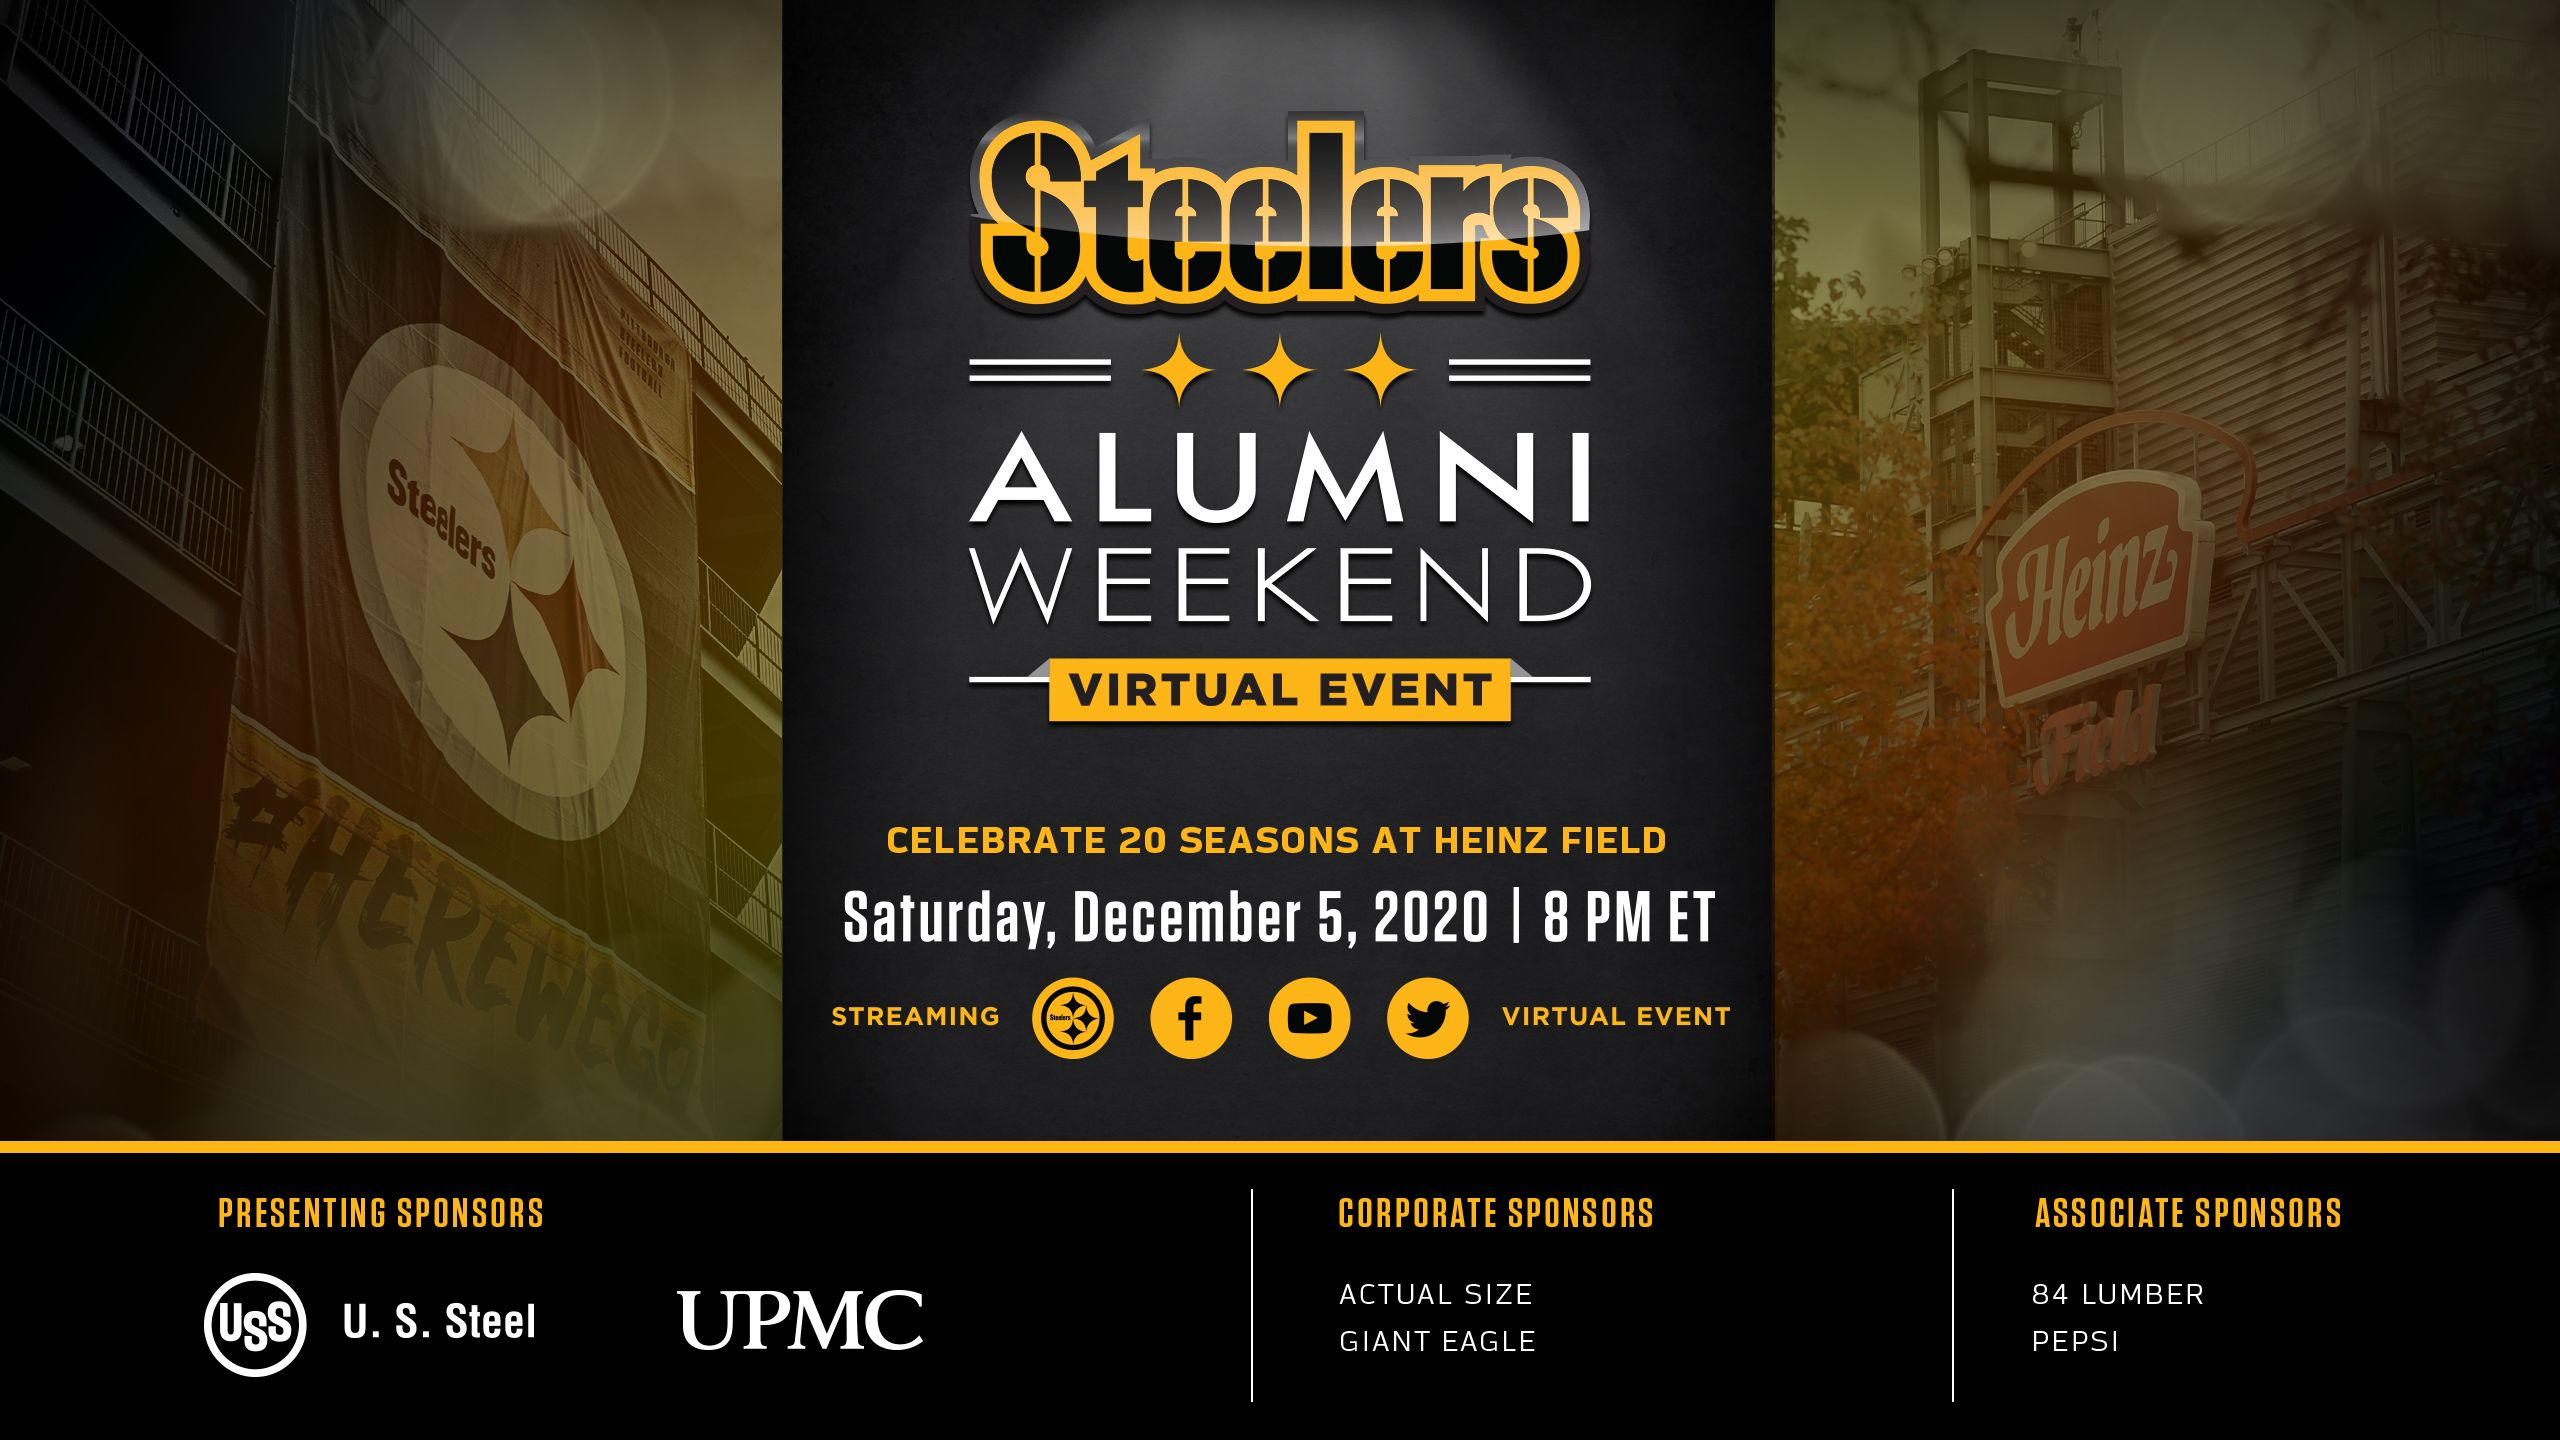 Celebrate Pittsburgh Steelers Alumni and 20 Seasons at Heinz Field